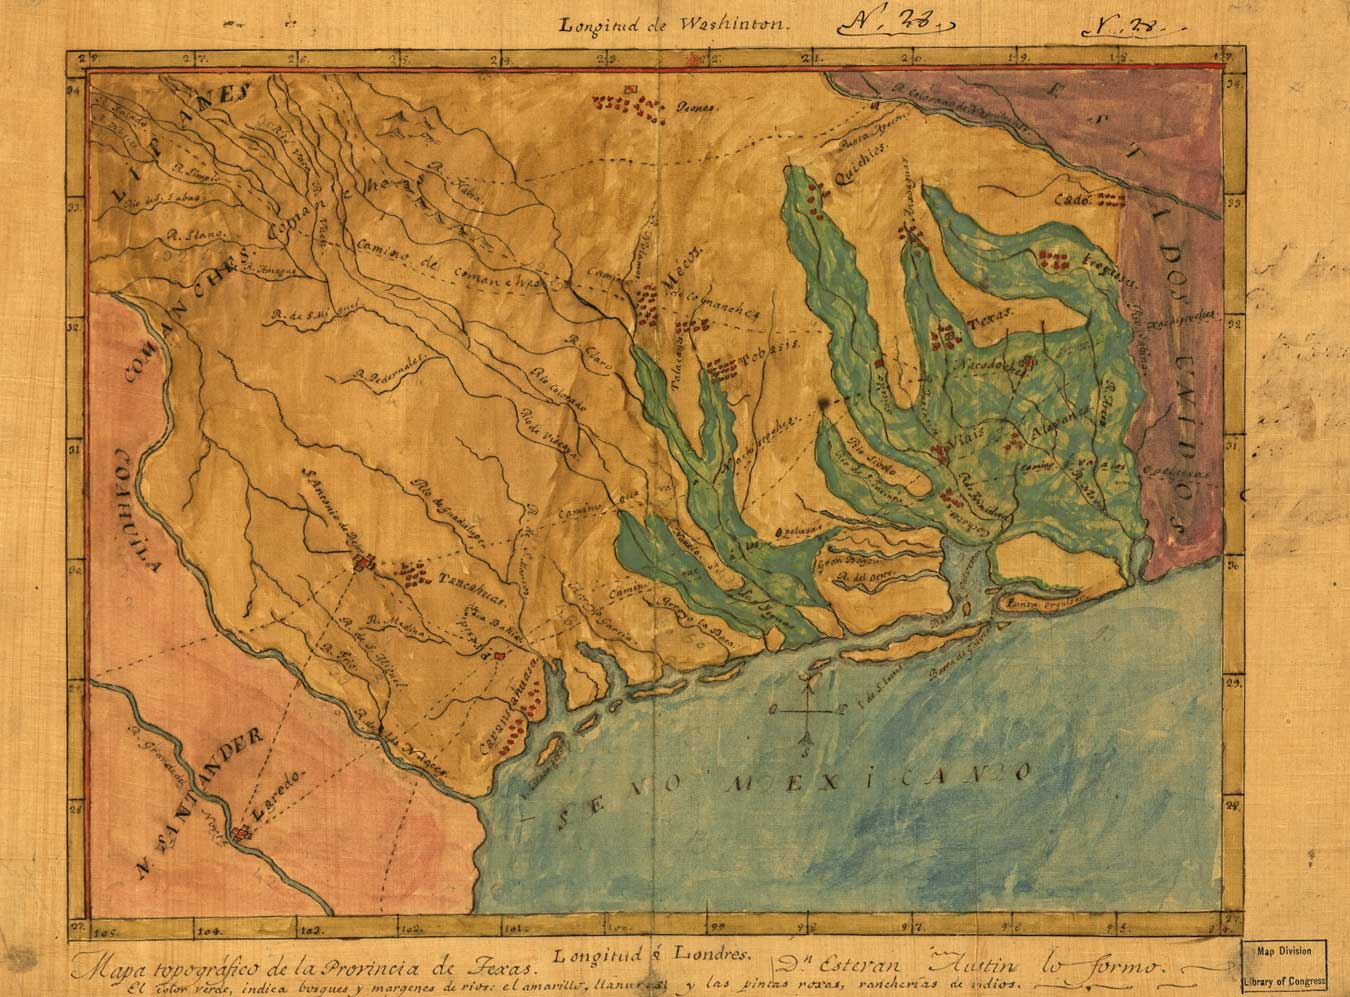 texas map drawn by stephen f austin in 1822 source click on any image to enlarge